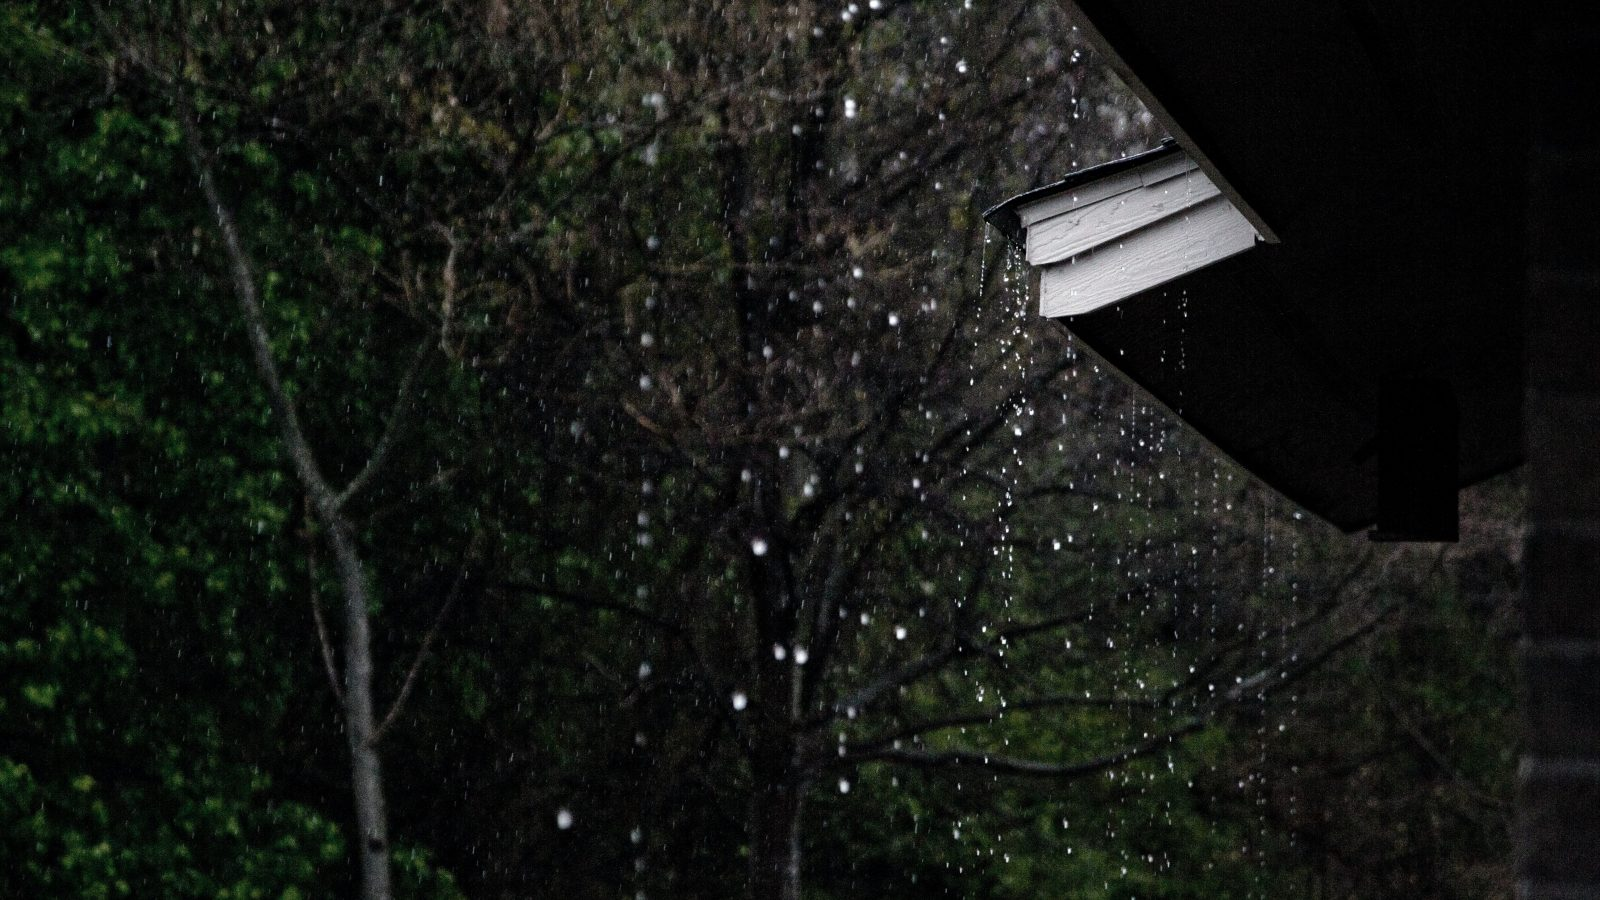 rain dripping off a roof